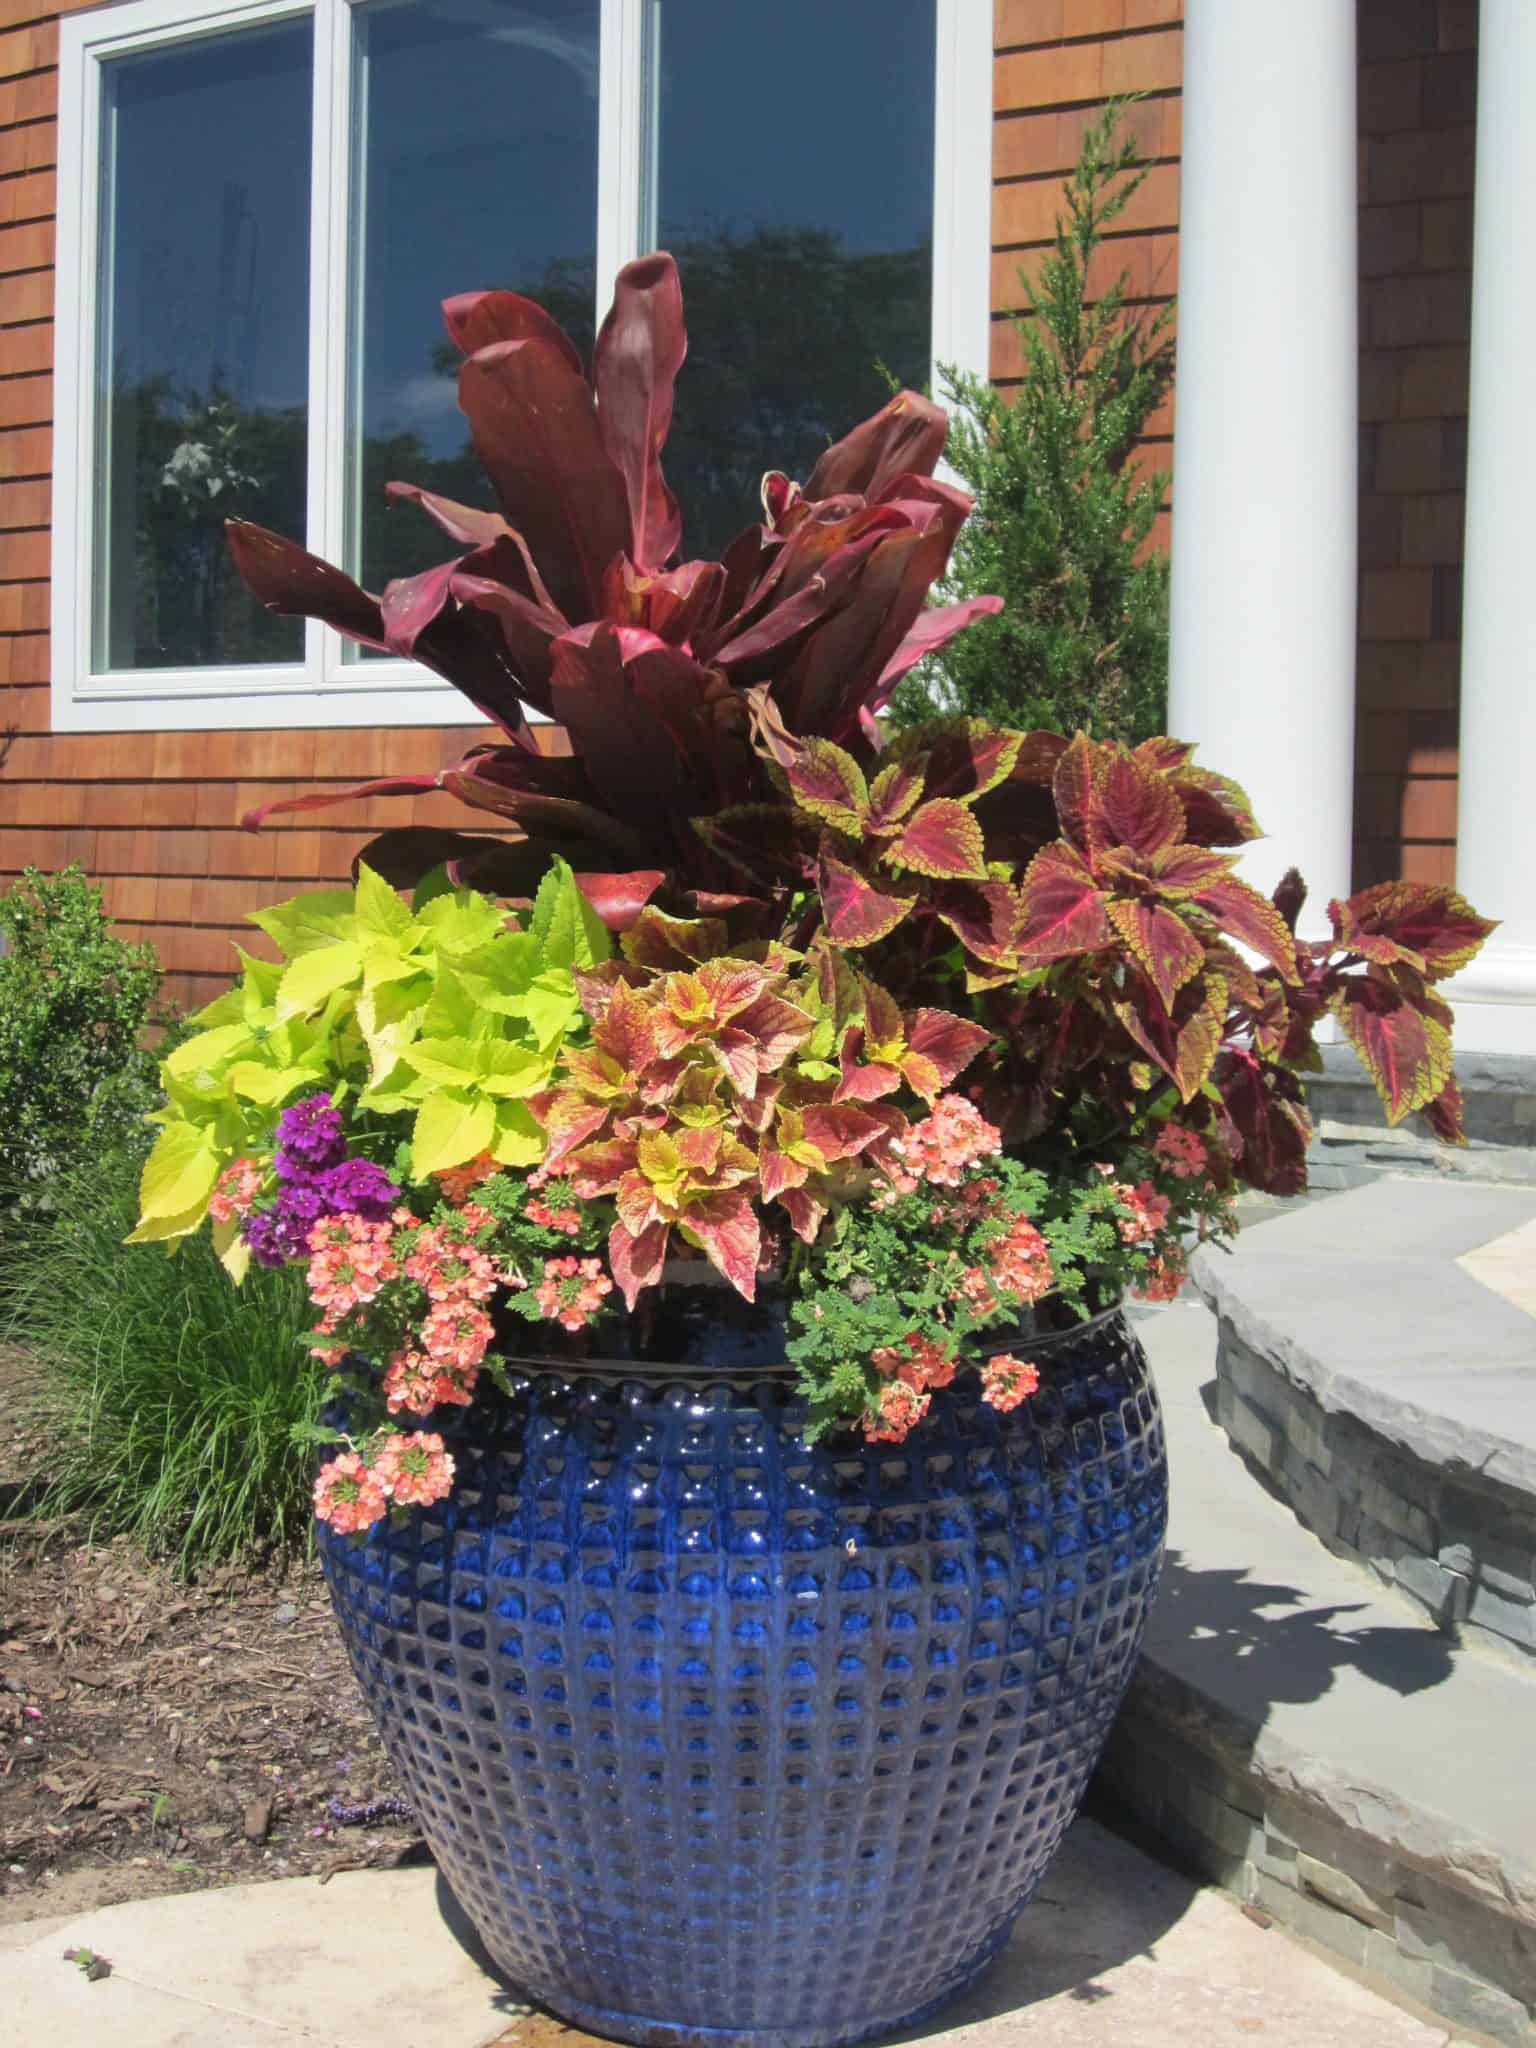 36 inch Glazed Diamond Pottery planted with Coleus, Tie, and Verbena - Southampton, Long Island